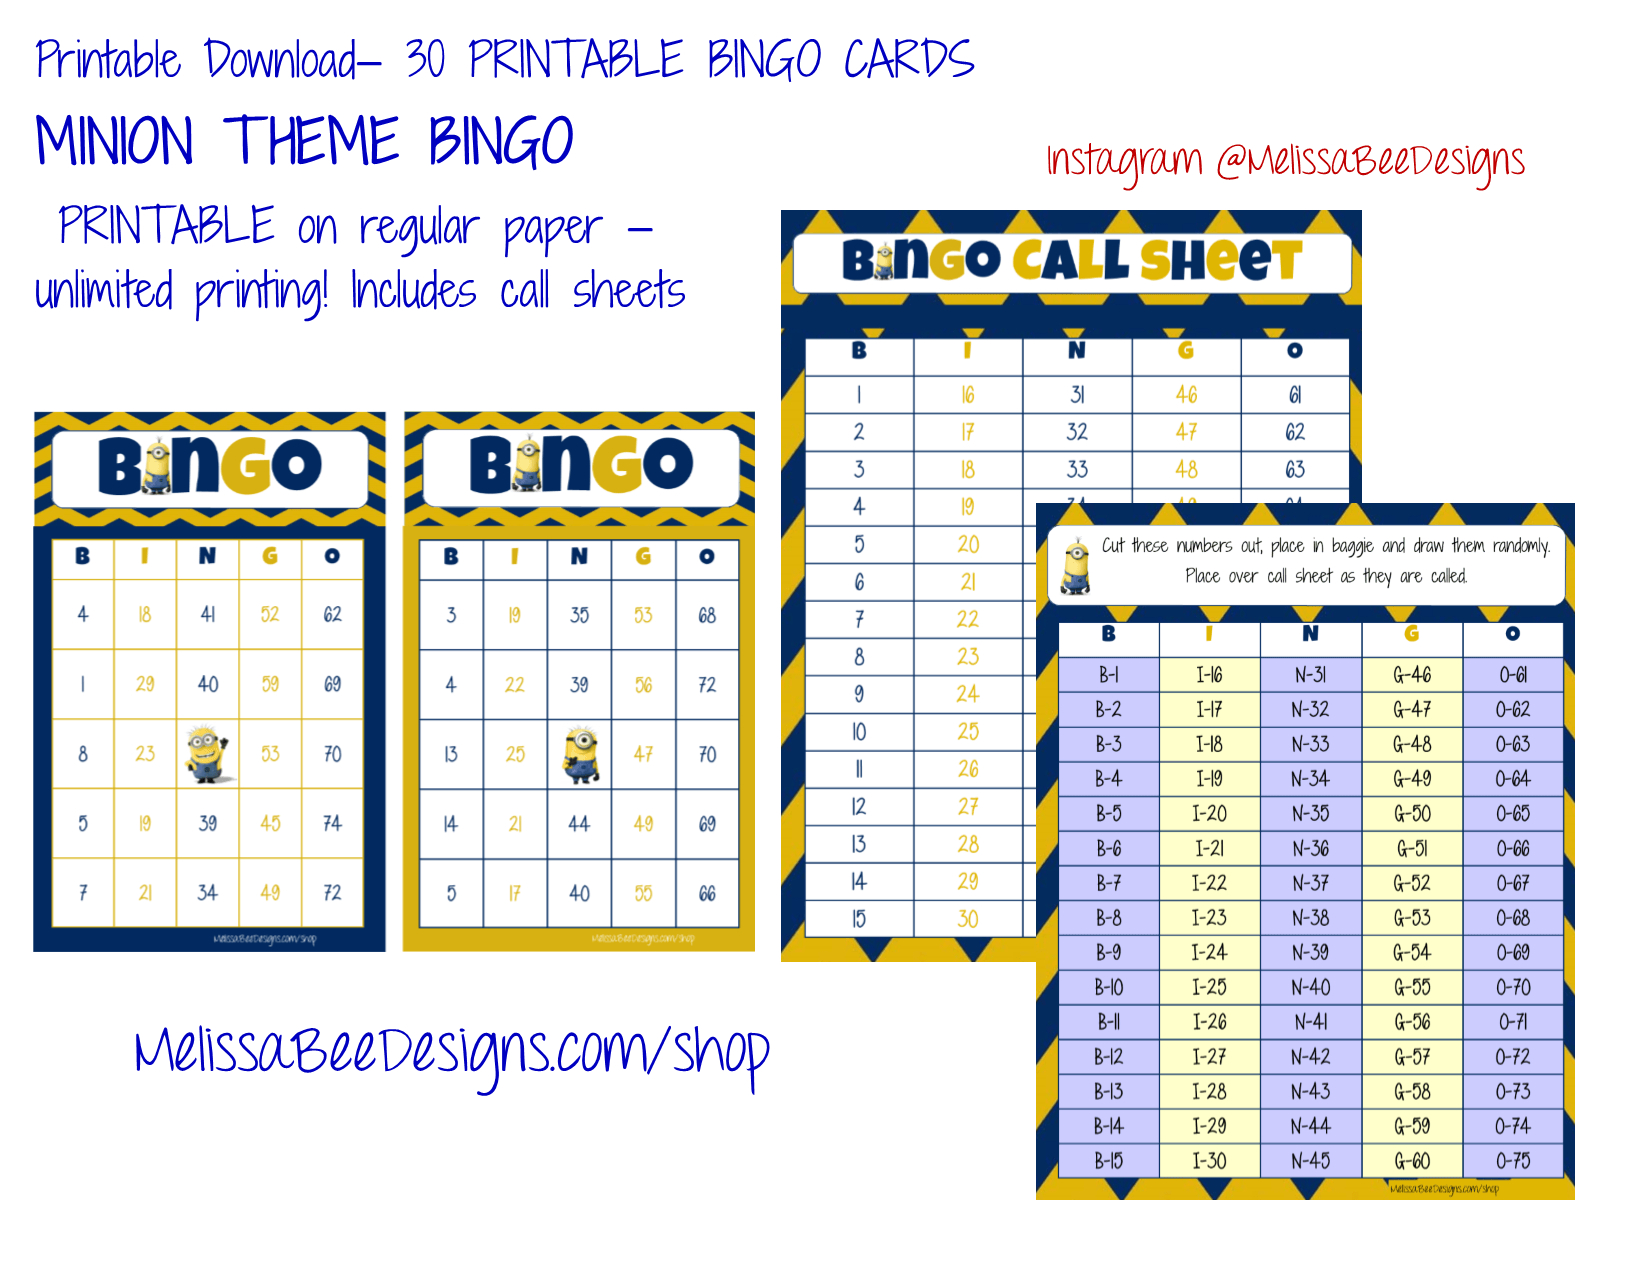 Printable Minion Bingo Cards – 30 Different Cards With Call